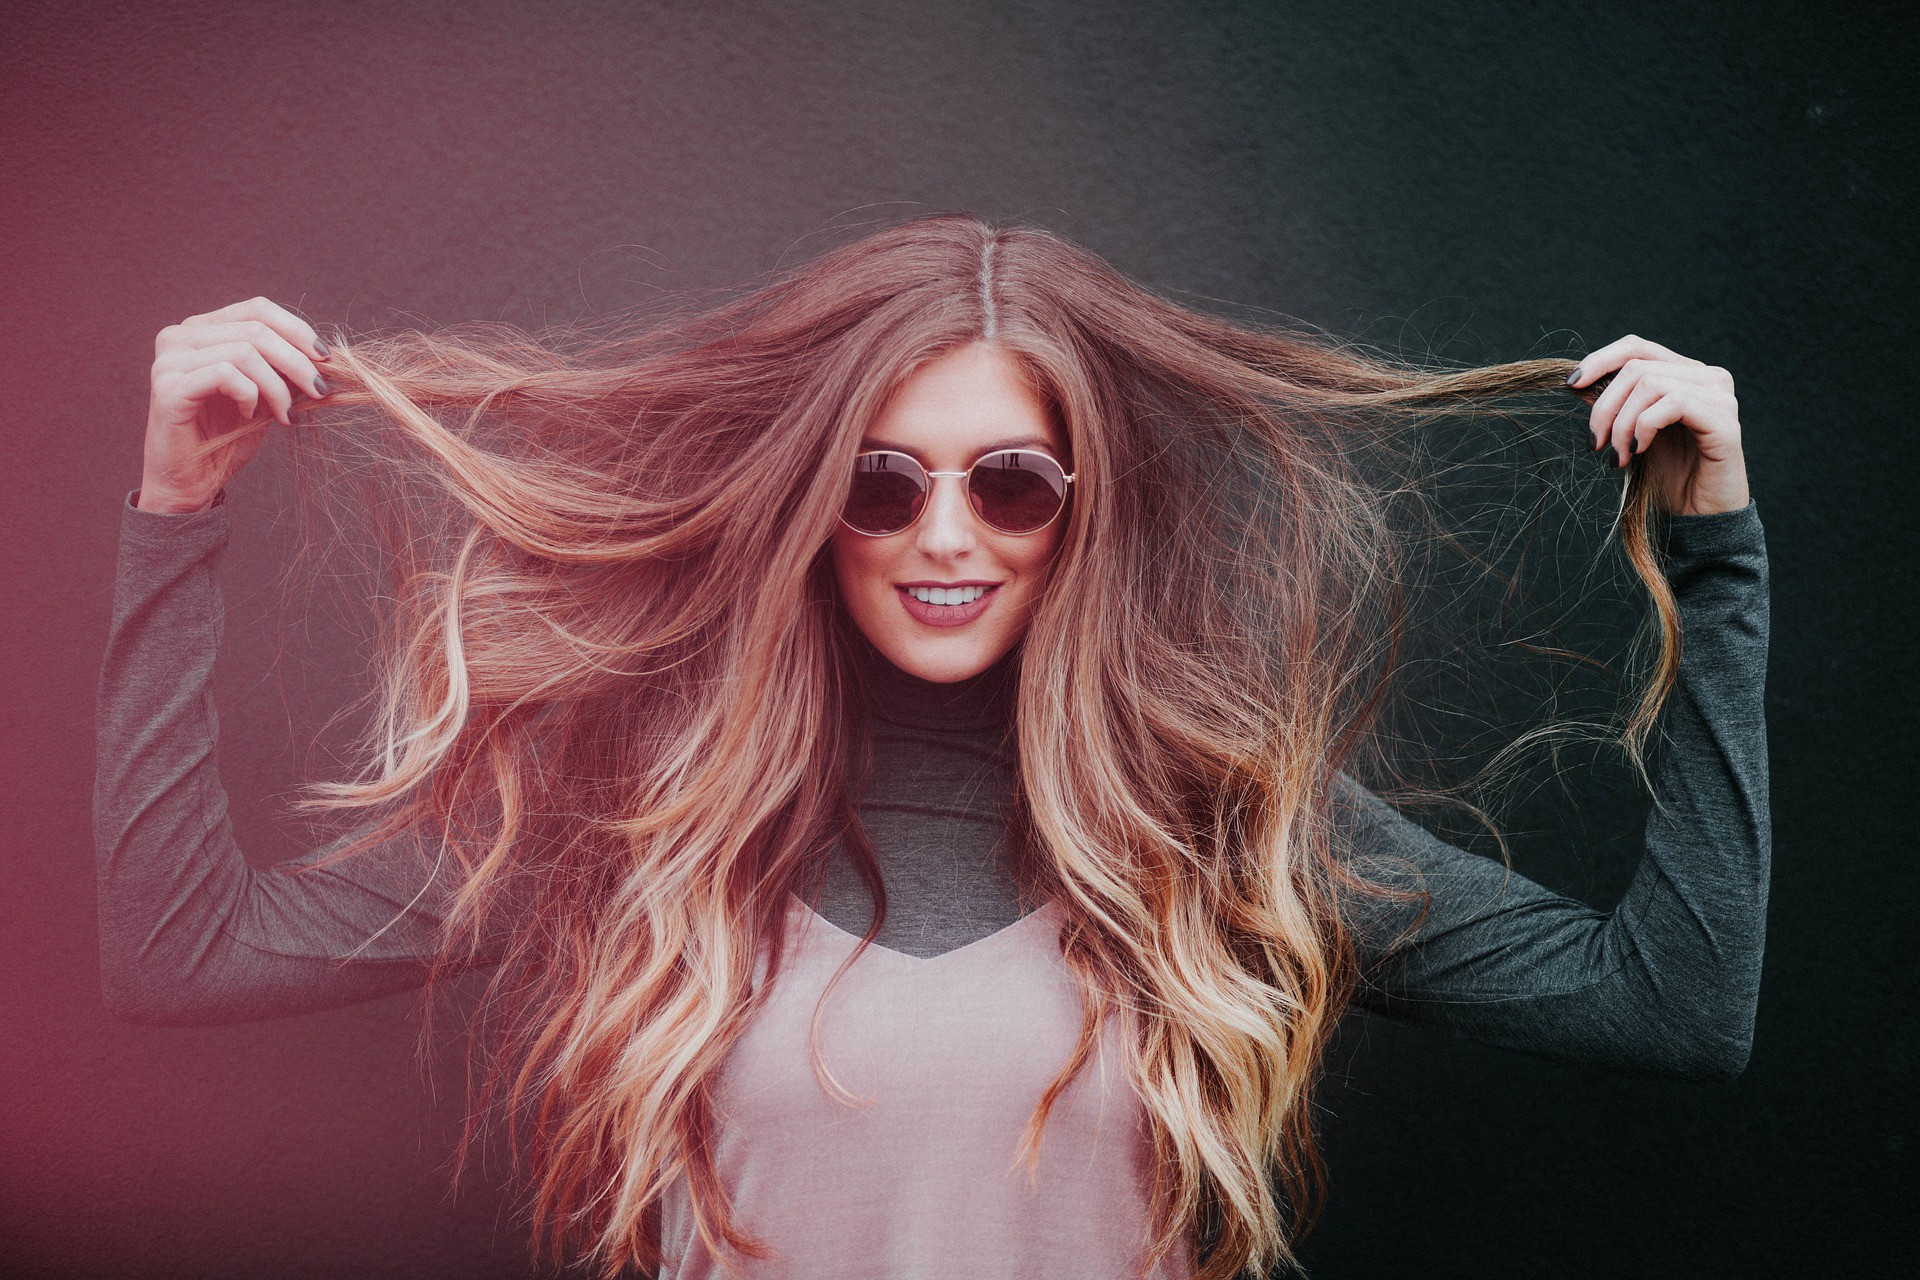 Woman in sun glasses with long hair holding her hair out